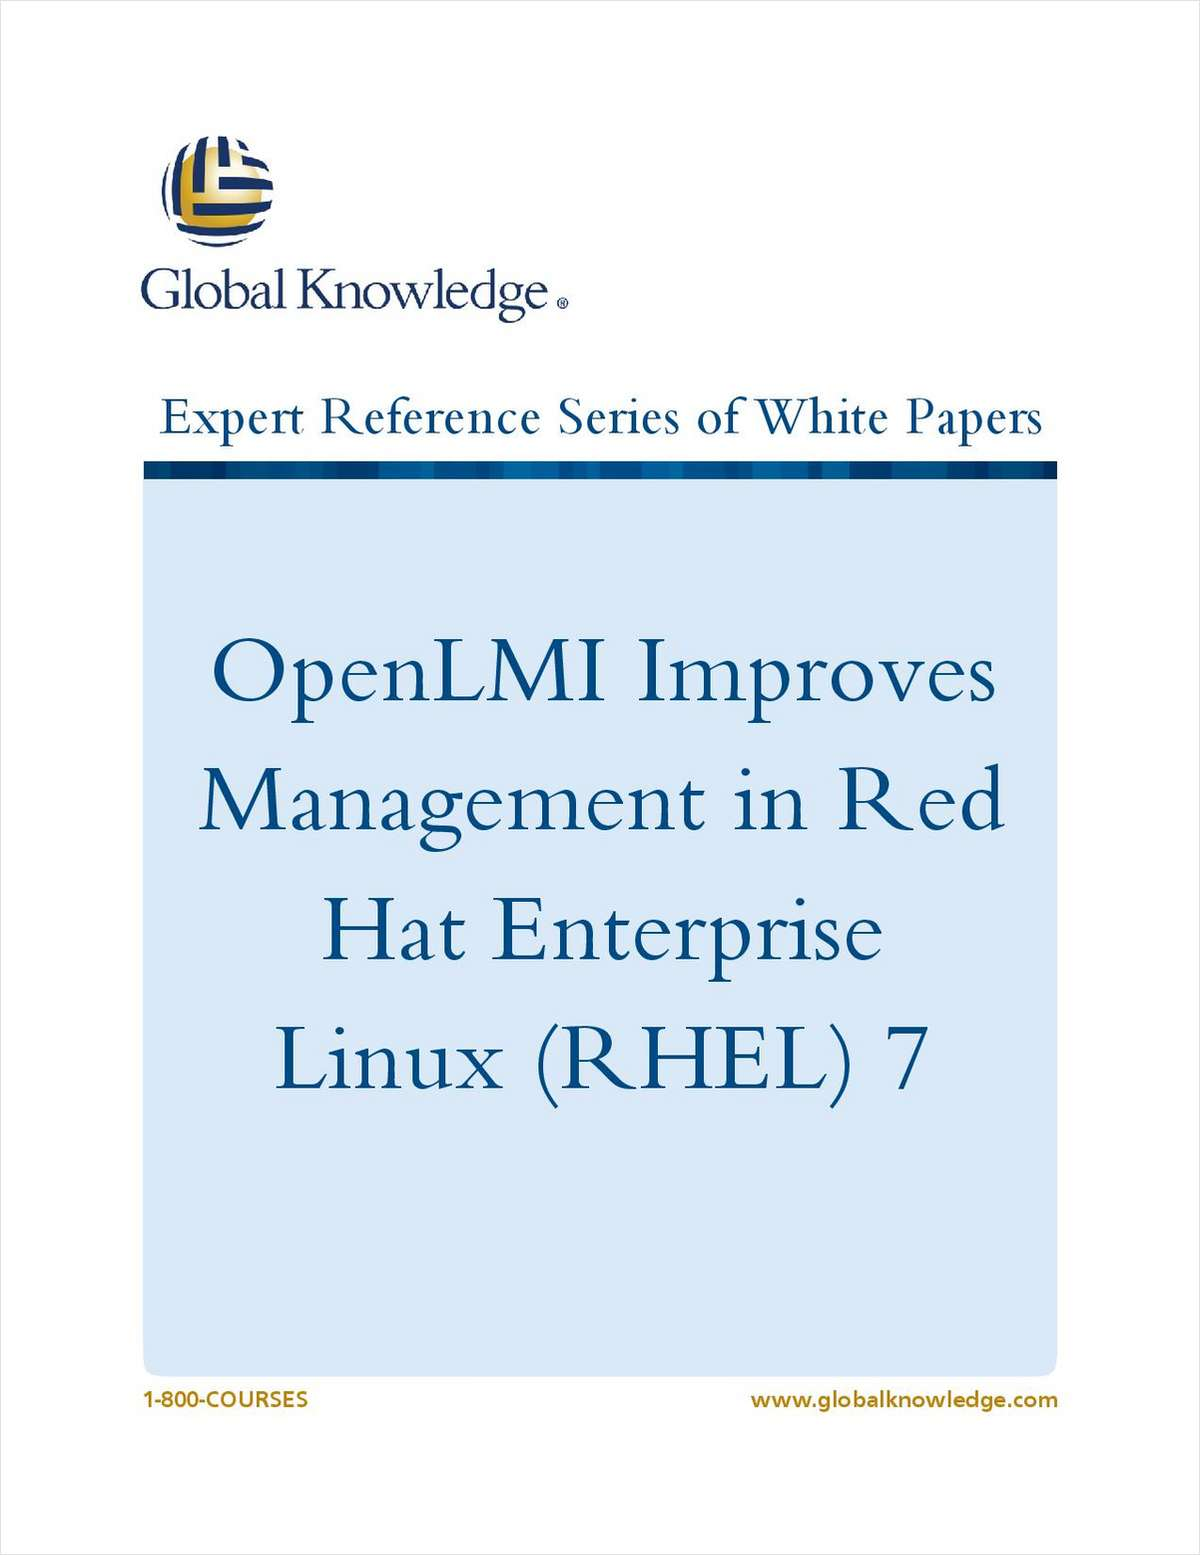 Openlmi improves management in red hat enterprise linux rhel 7 request your free white paper